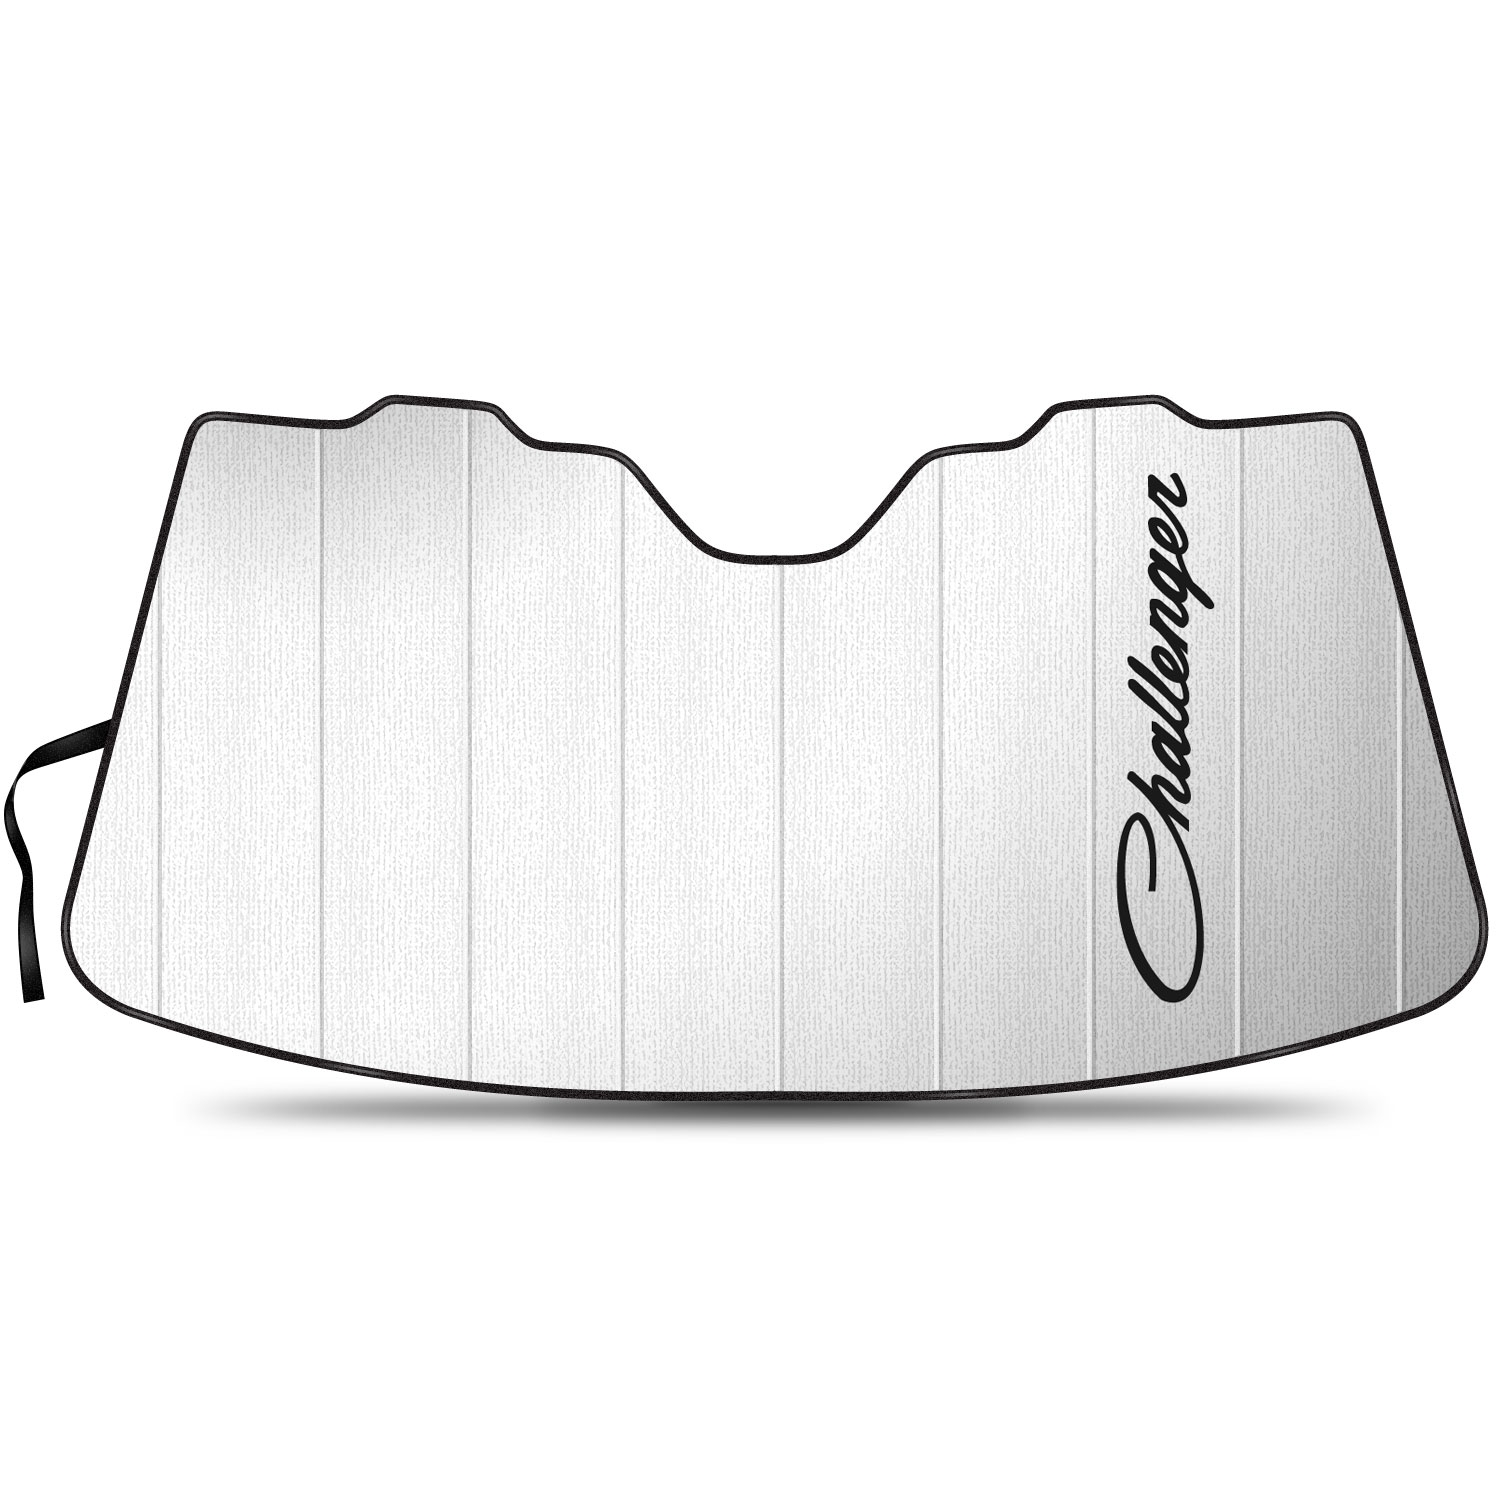 """Dodge Challenger Classic Logo 55-1/2""""x 27"""" Stand Up Universal Fit Auto Windshield Sun Shade"""